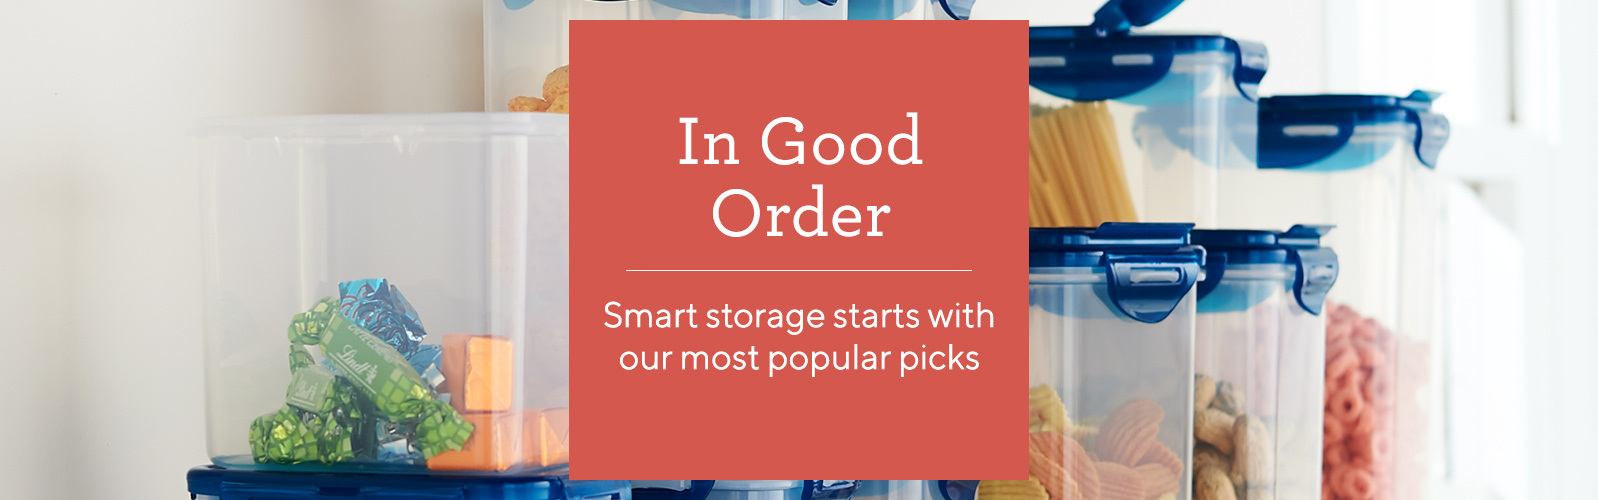 In Good Order  Smart storage starts with our most popular picks